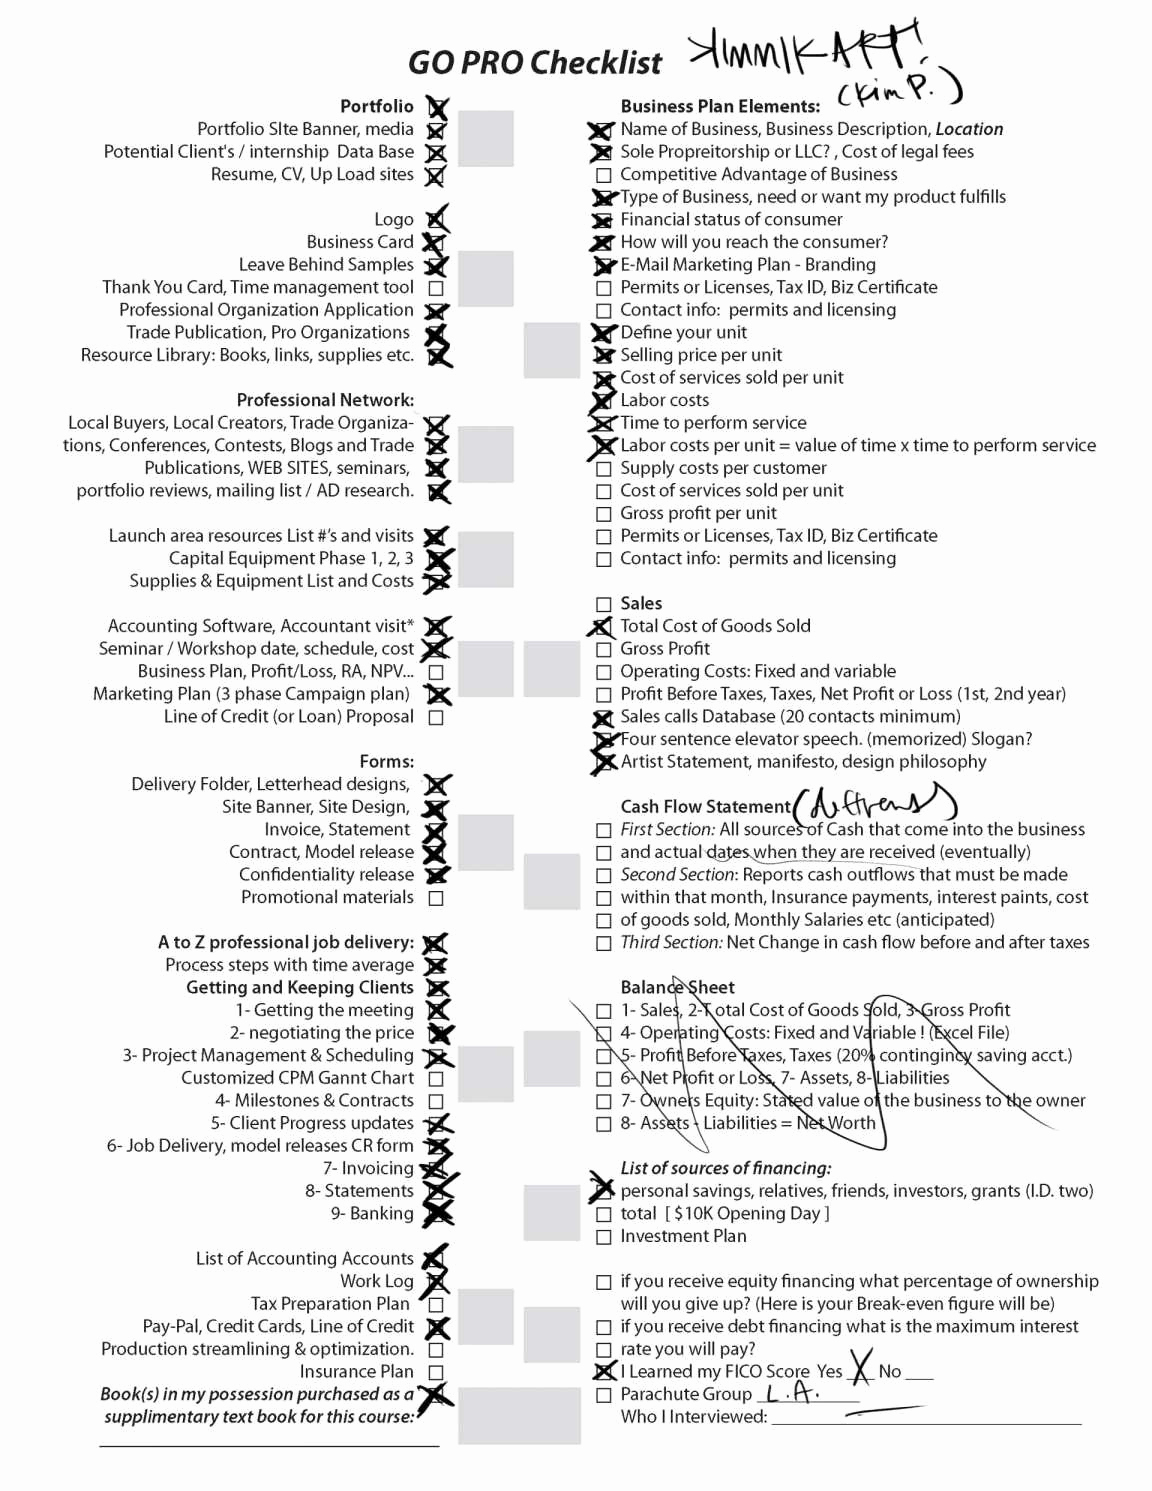 Material List For Building A House Spreadsheet Throughout Material List For Building A House Spreadsheet New Home Construction